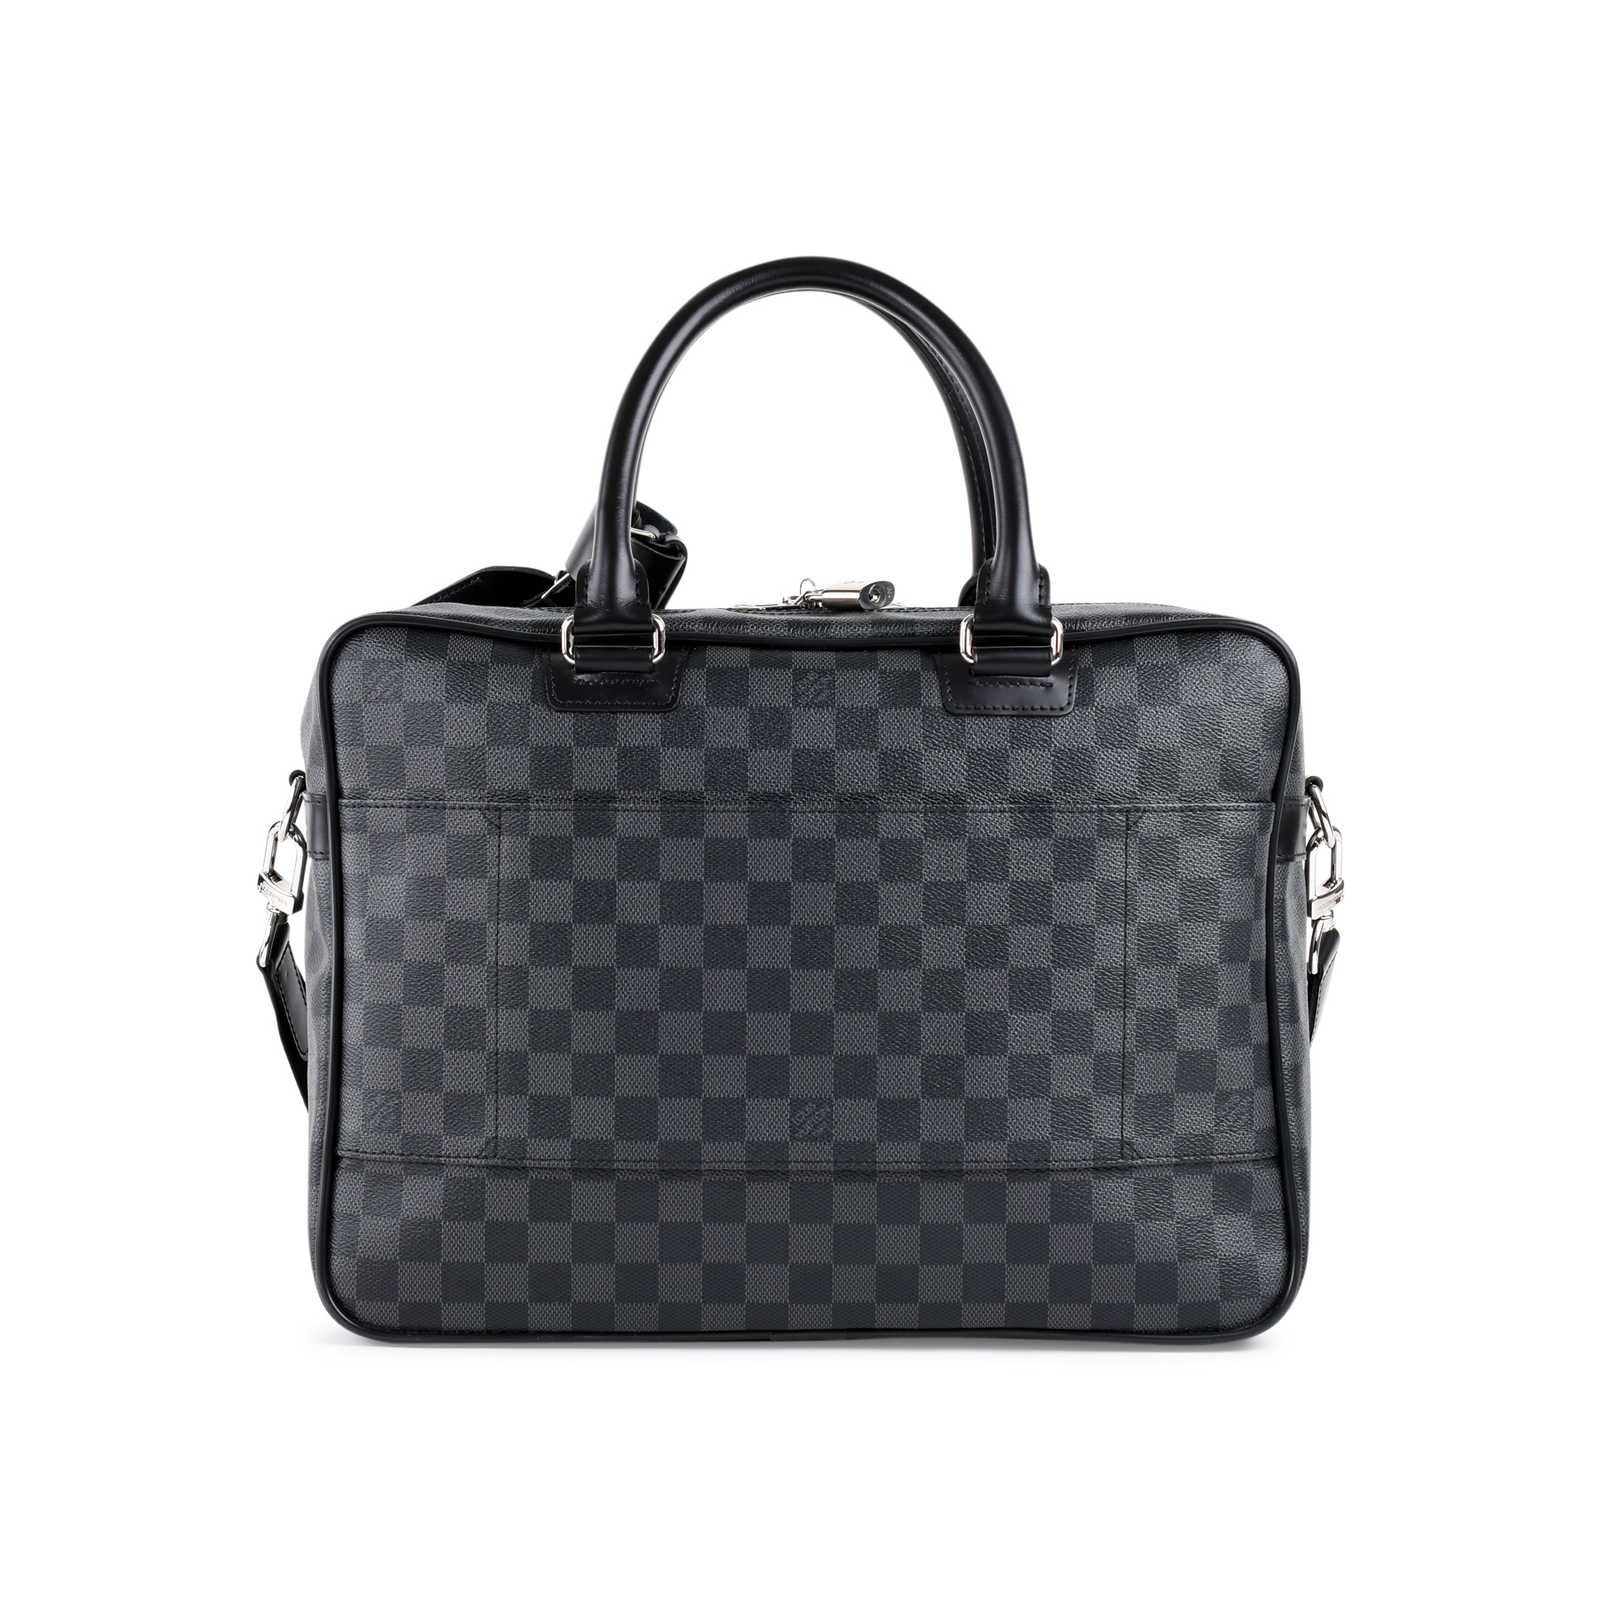 fe4da513c461 ... Authentic Second Hand Louis Vuitton Icare Damier Graphite Bag  (PSS-462-00052) ...